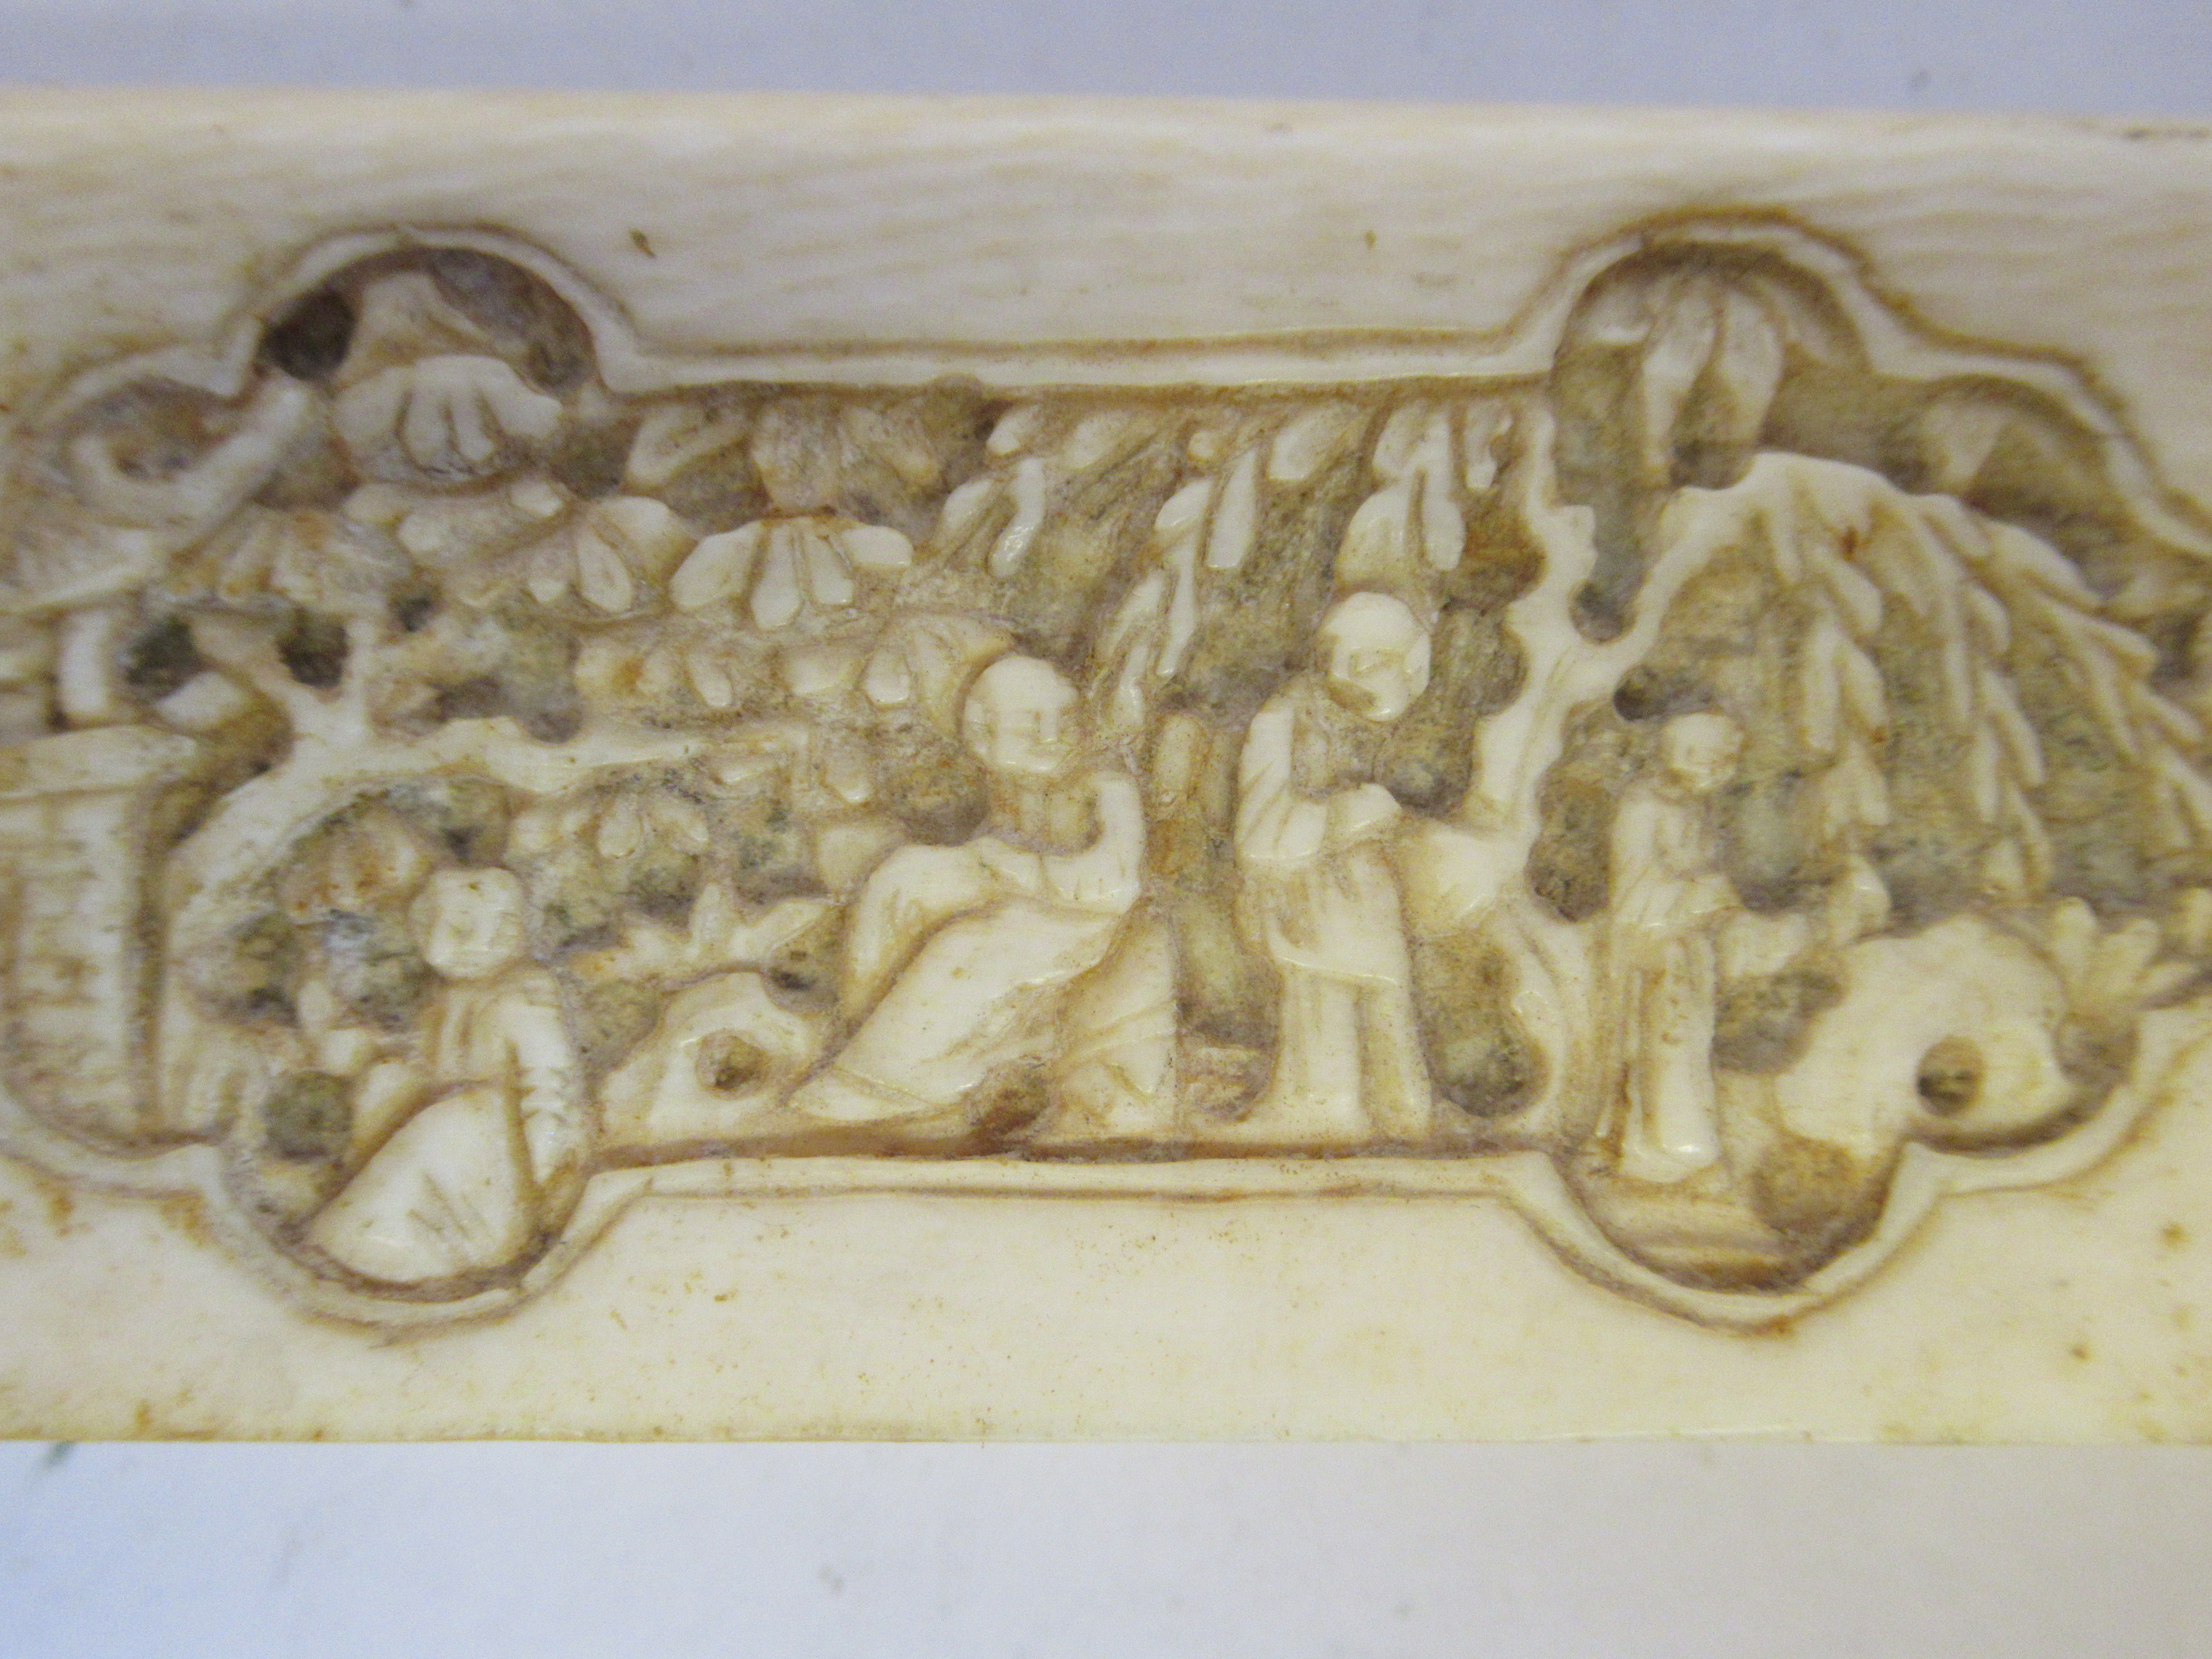 A late 19th/early 20thC Chinese ivory two part card case, carved in vignette panels with figures, in - Image 5 of 5